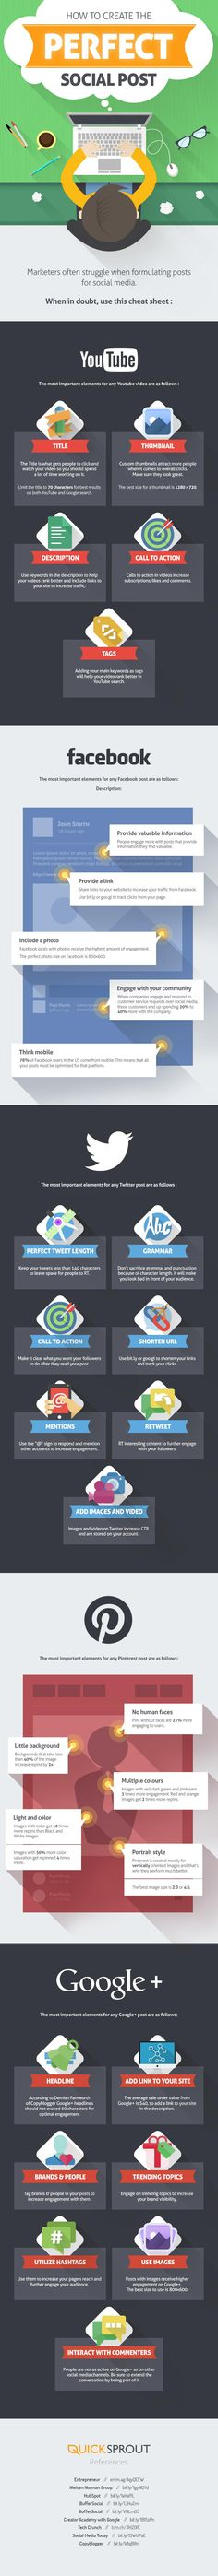 How to create the perfect social media post (Infographic)